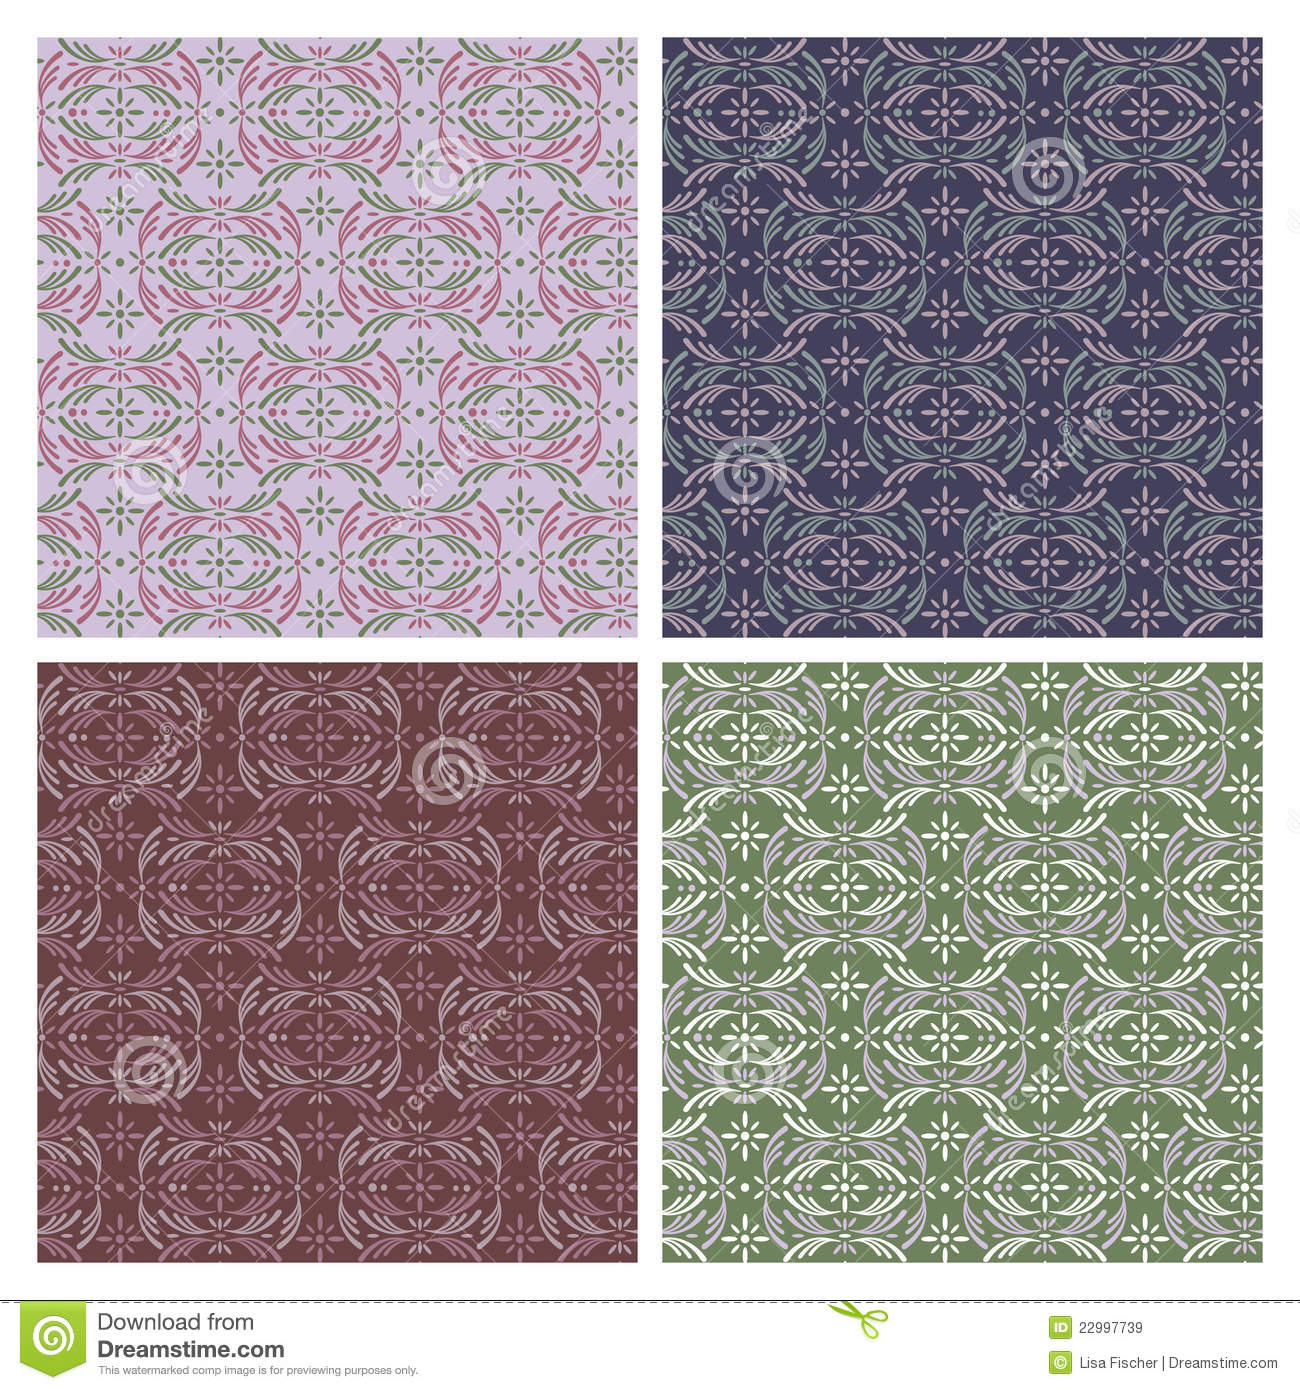 Modern Victorian Pattern in Cool Colors